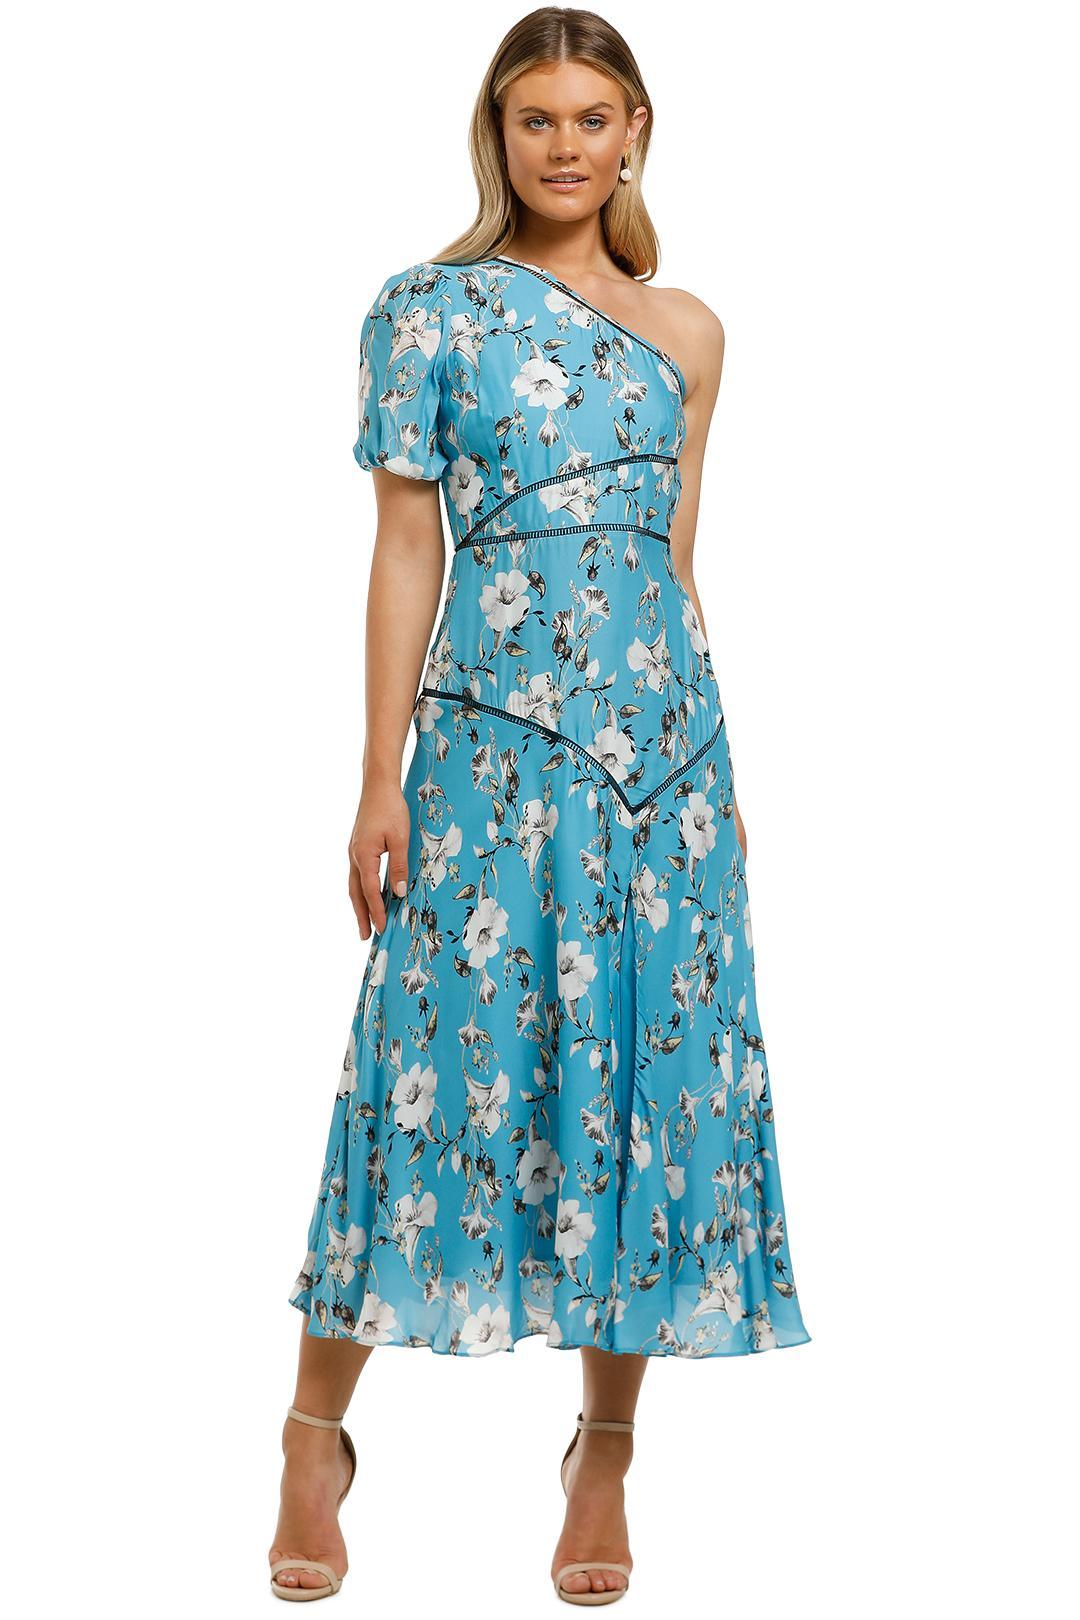 Talulah - Cannes Midi Dress - Blue Valentine Floral